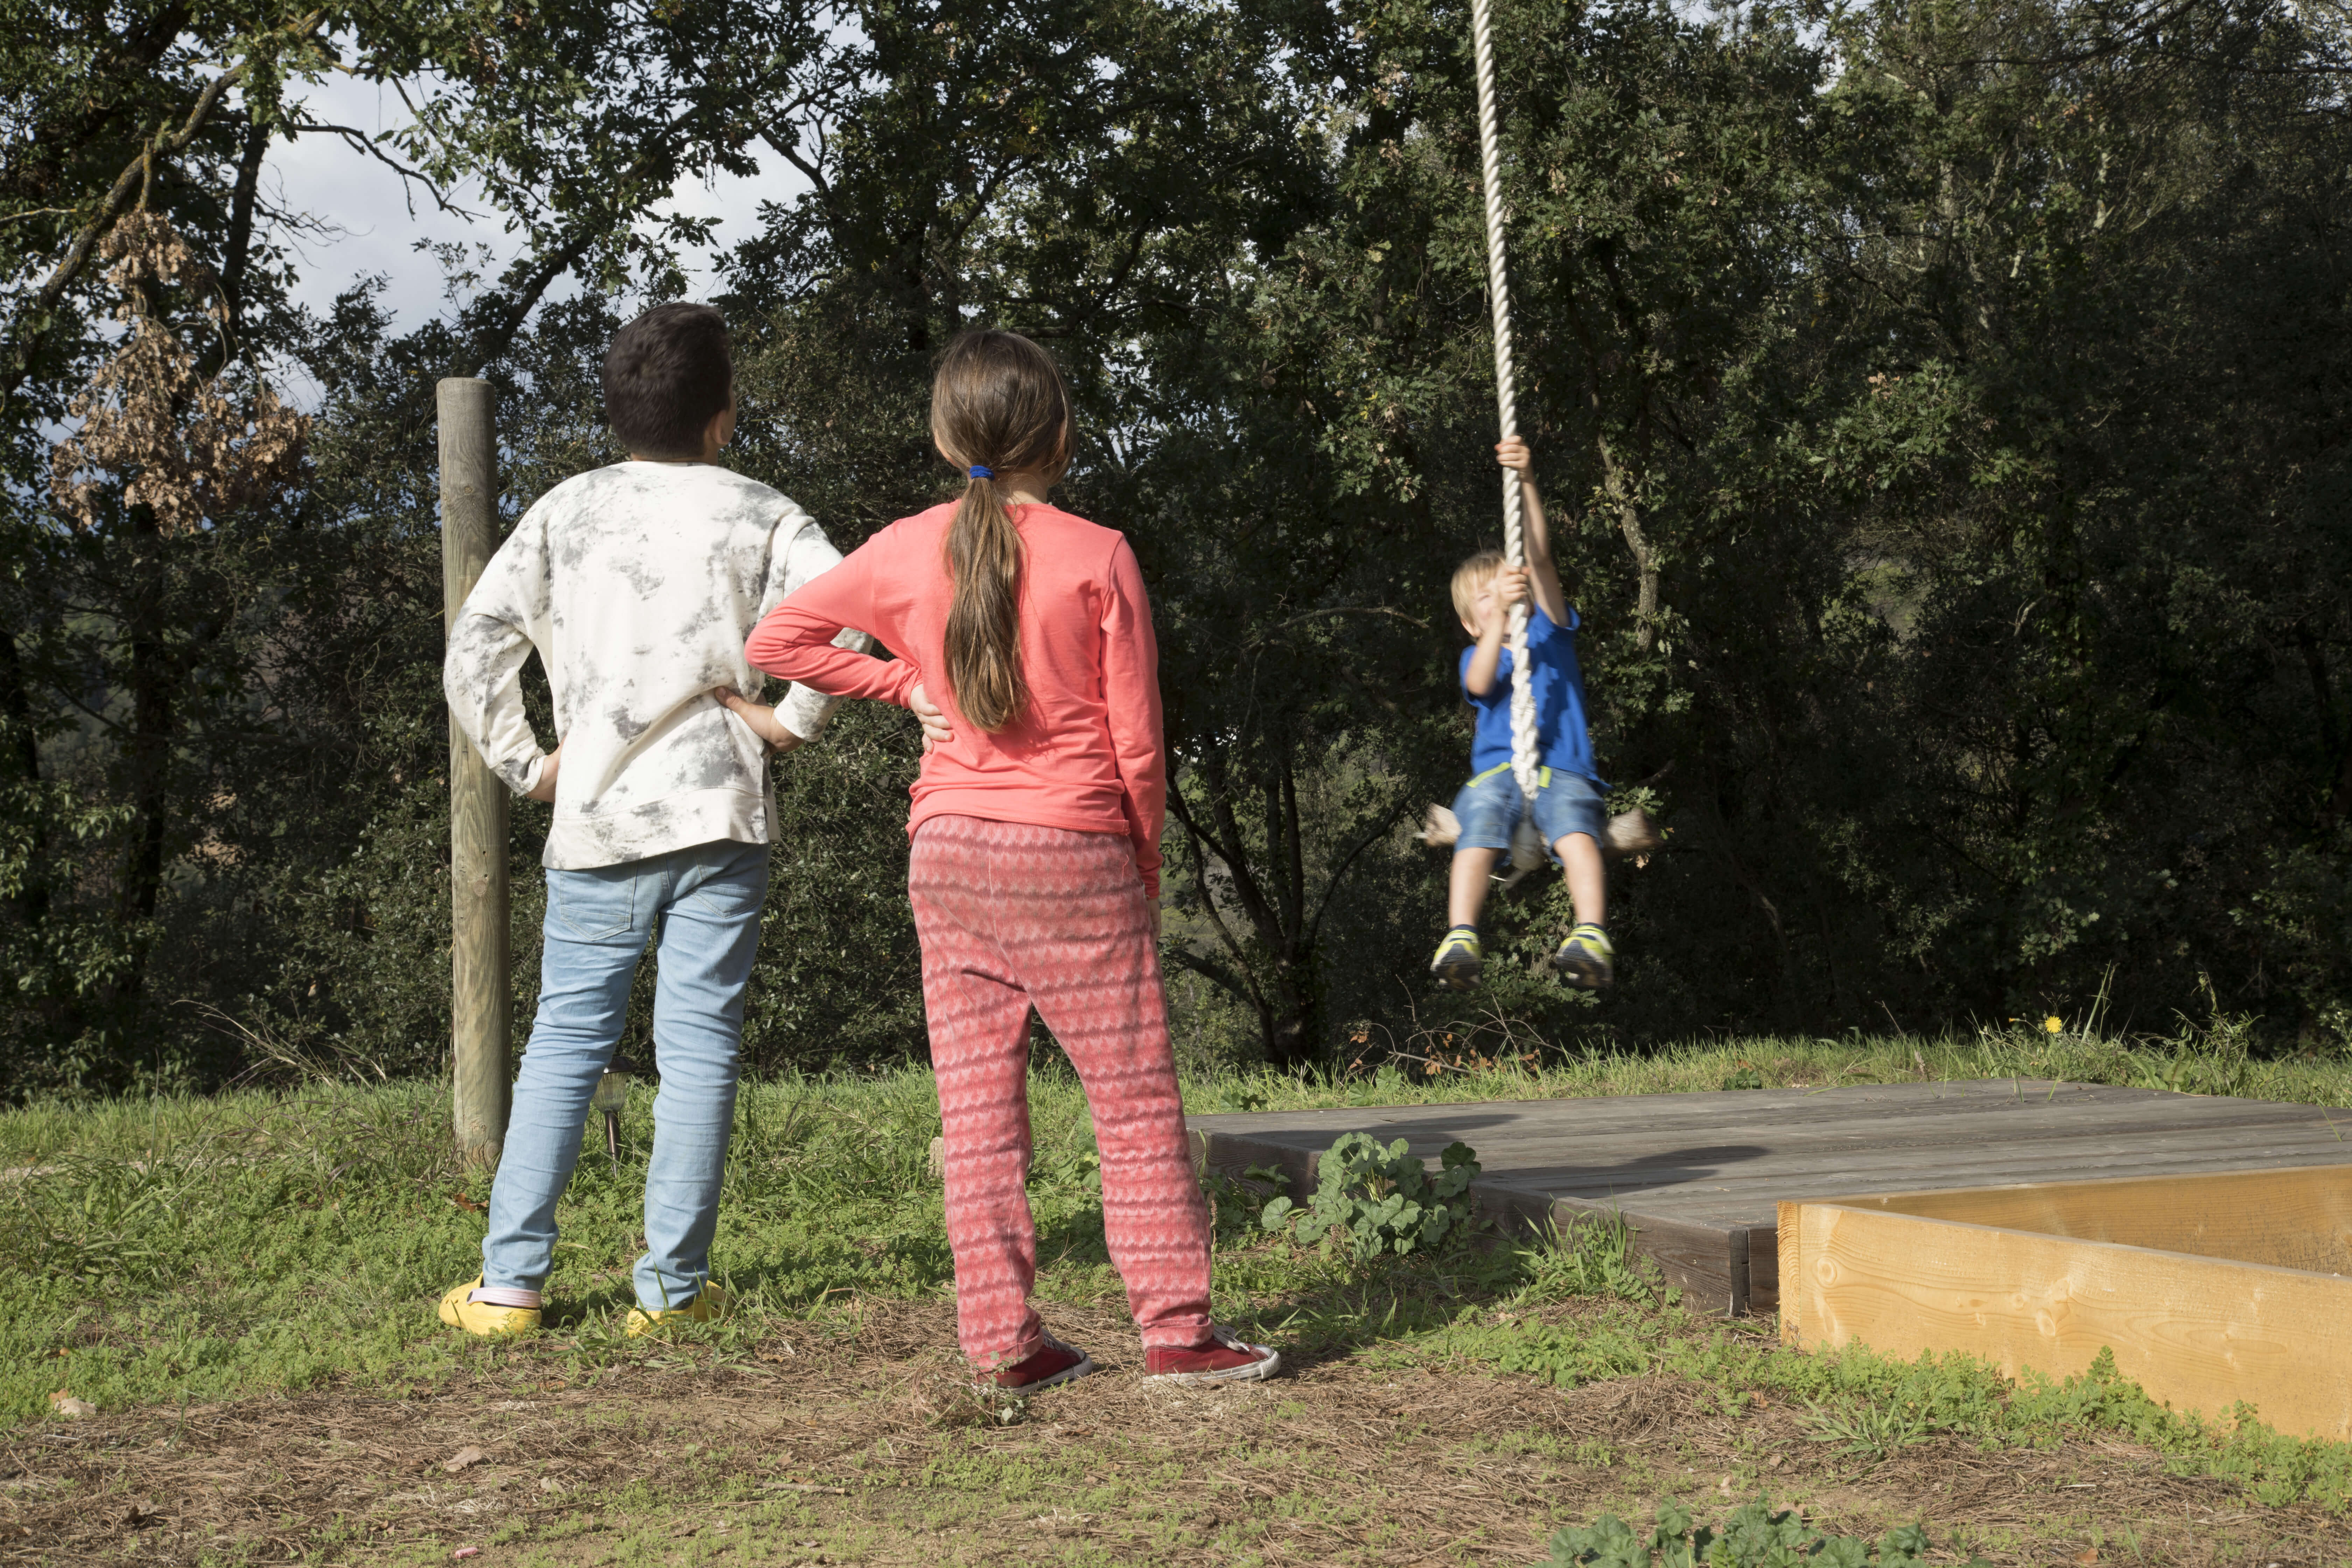 kids who might need to use medical cannabis at school playing on swing